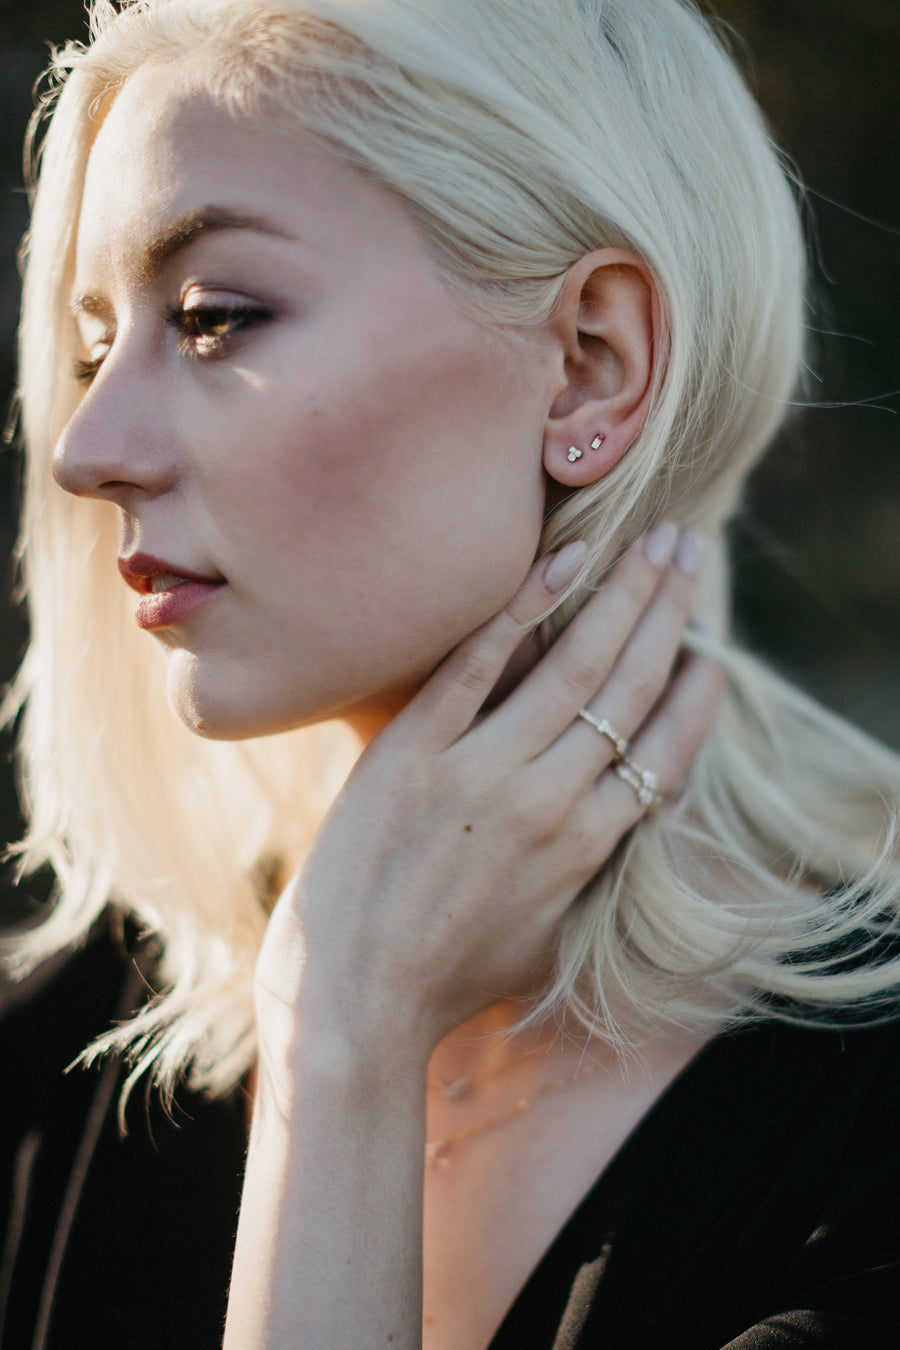 Haley is wearing the Kimber and Ansley Earrings.